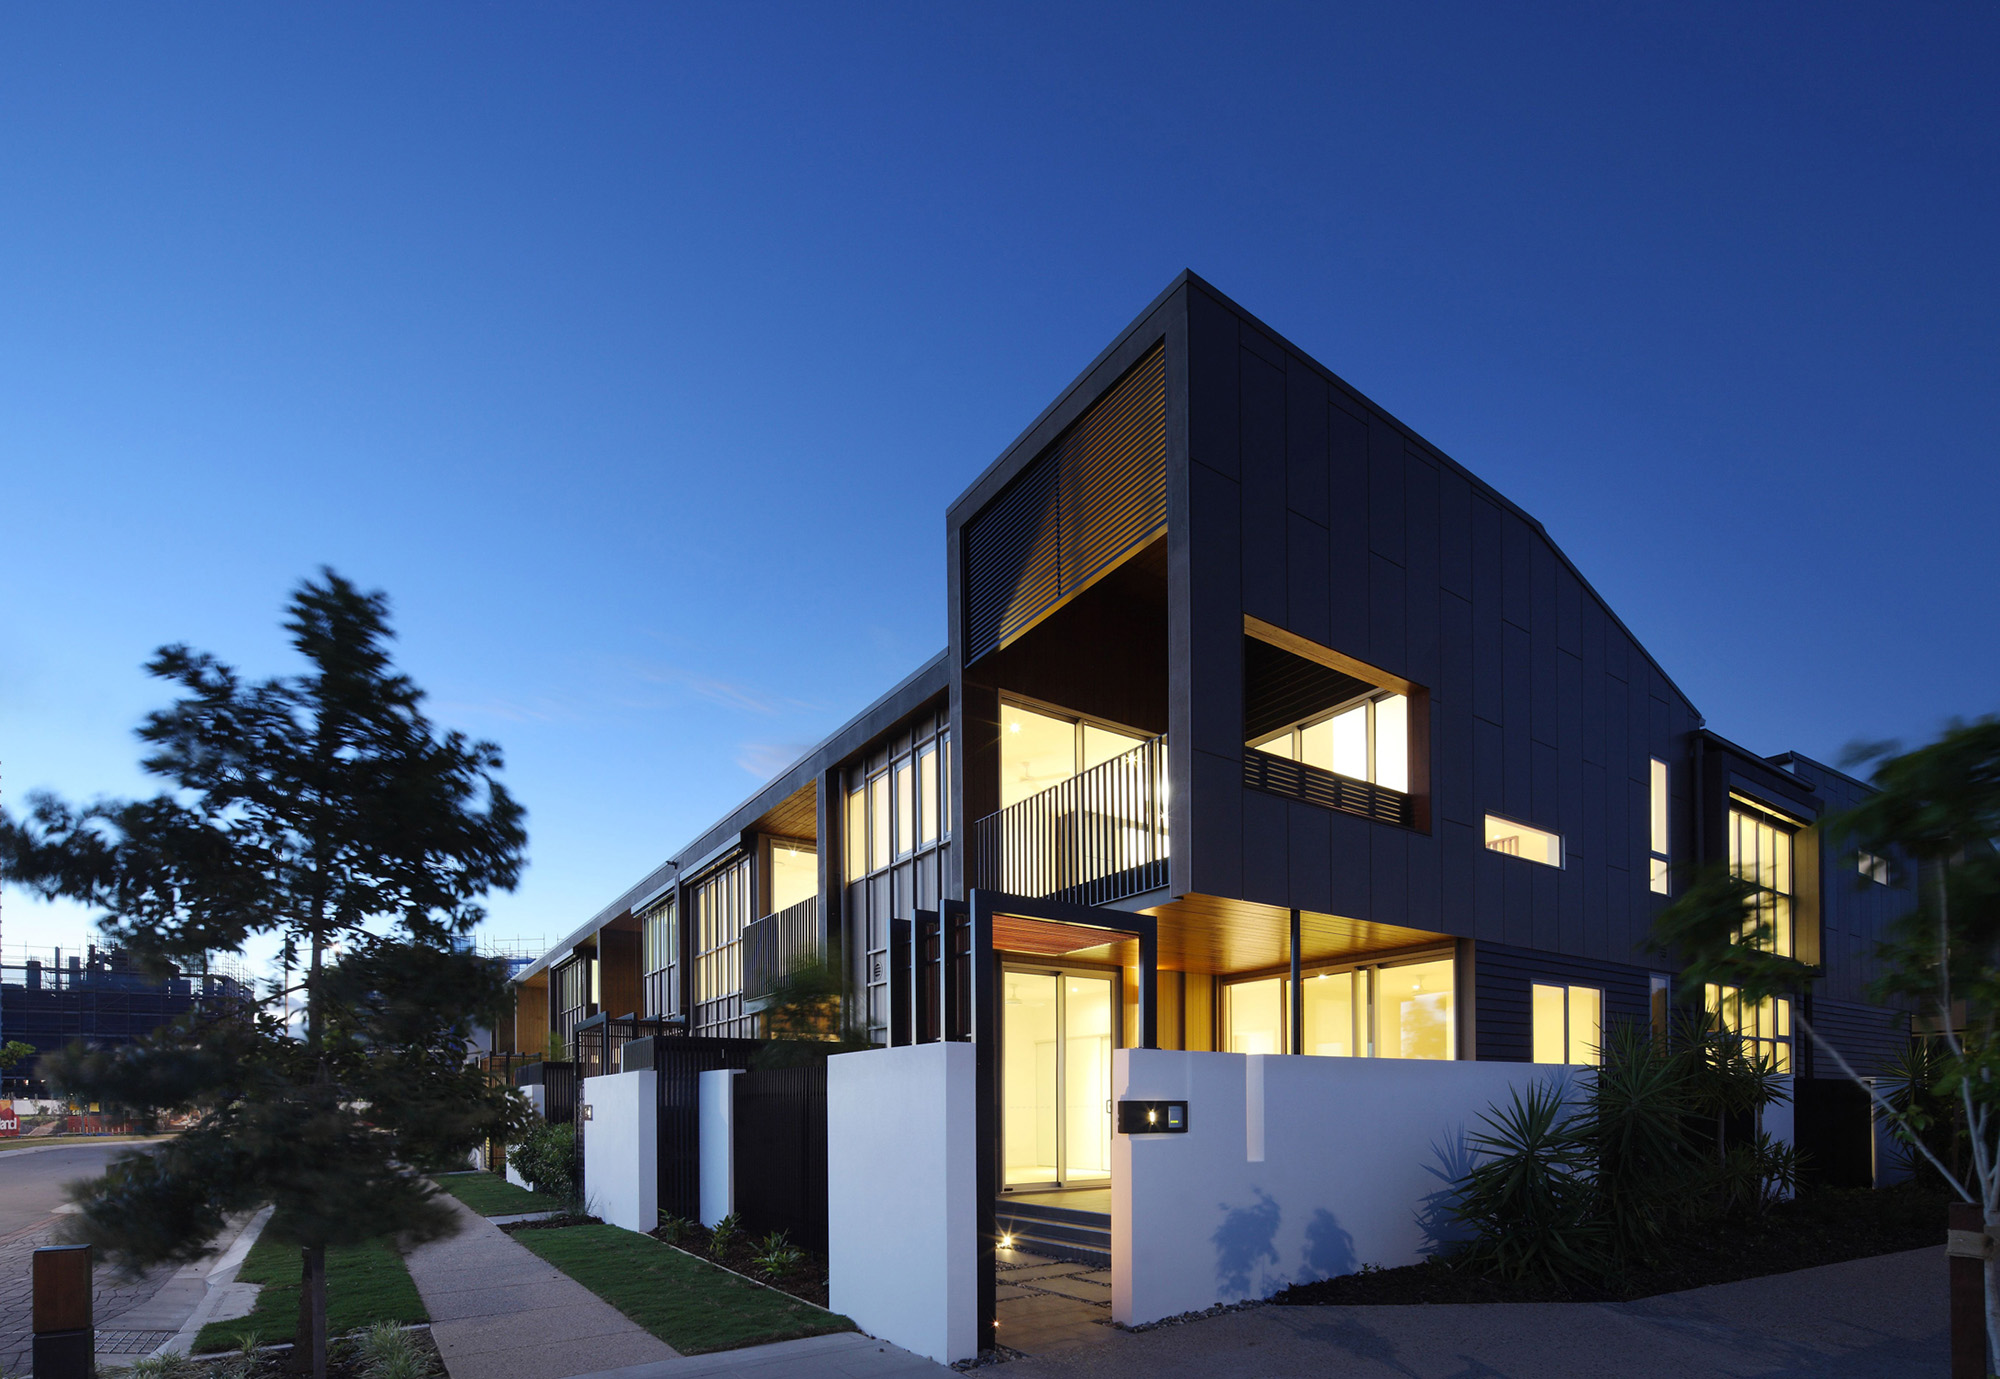 Green Quarter Rothelowman Architecture project